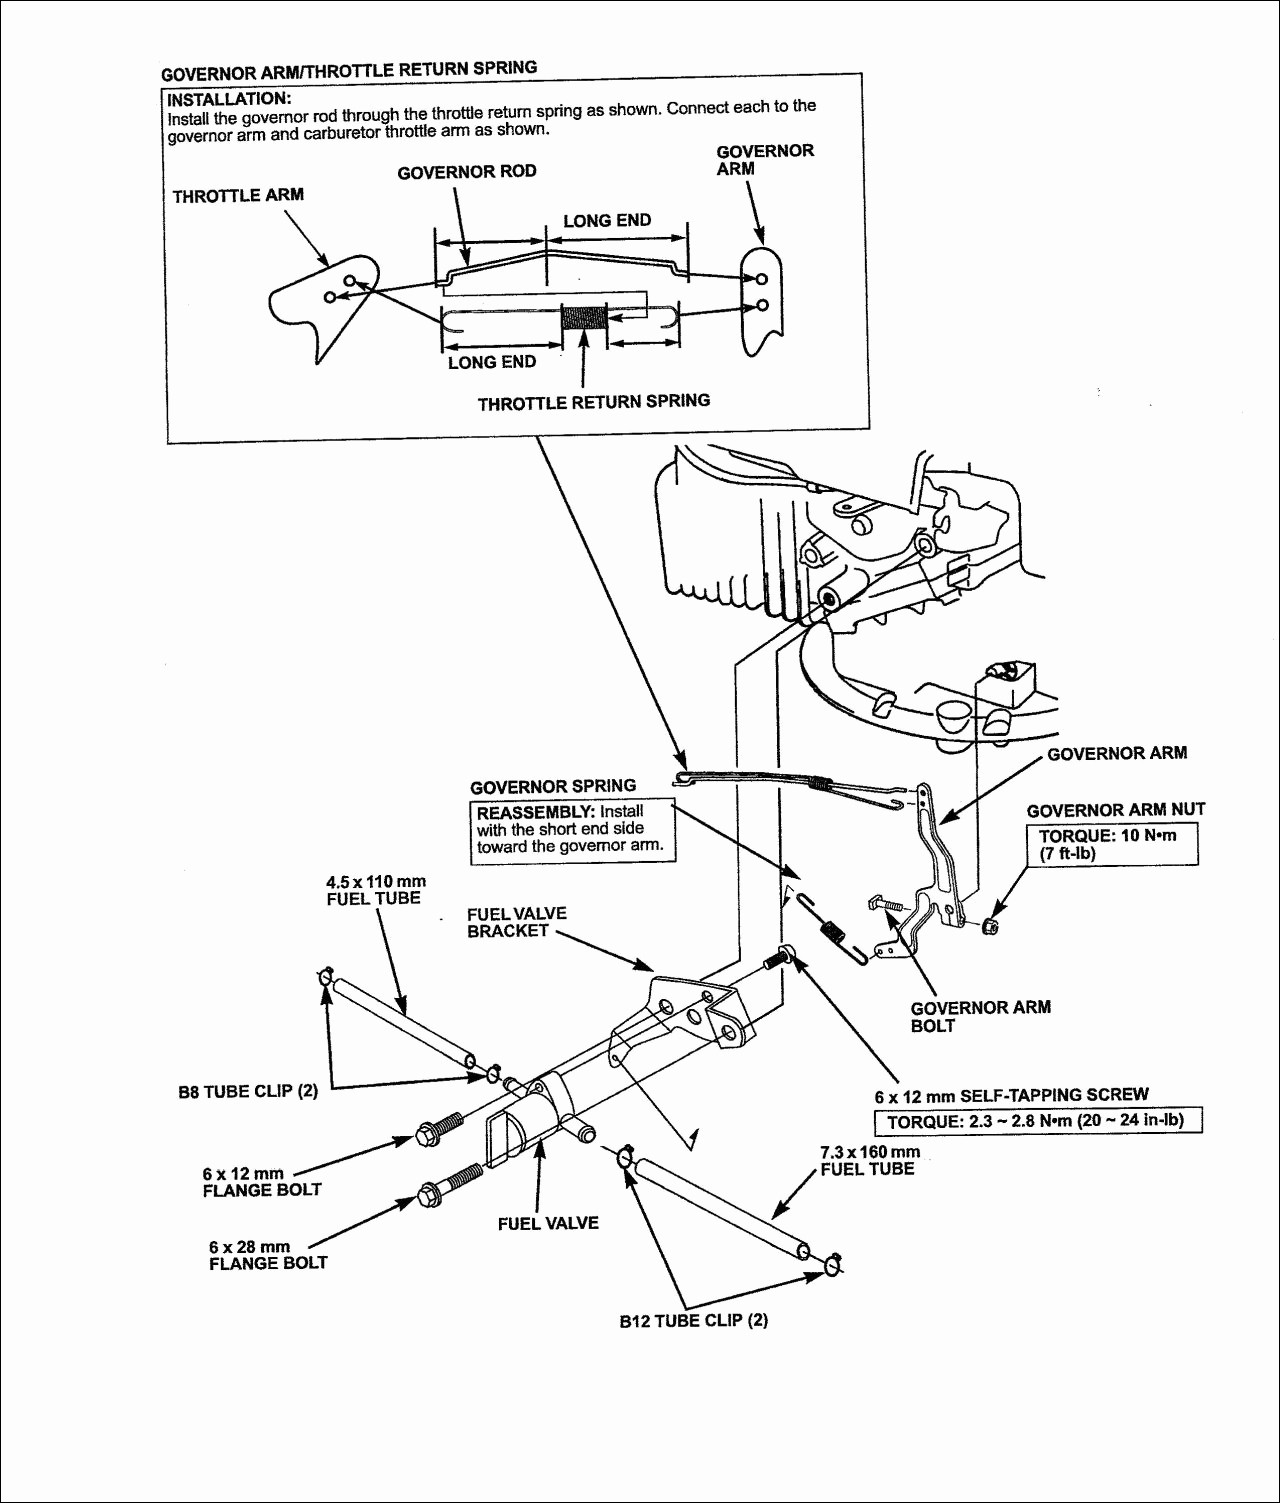 infiniti engine schematics circuit diagram template2000 infiniti i30 wiring diagram www casei store \\\\u2022infiniti engine schematics 8